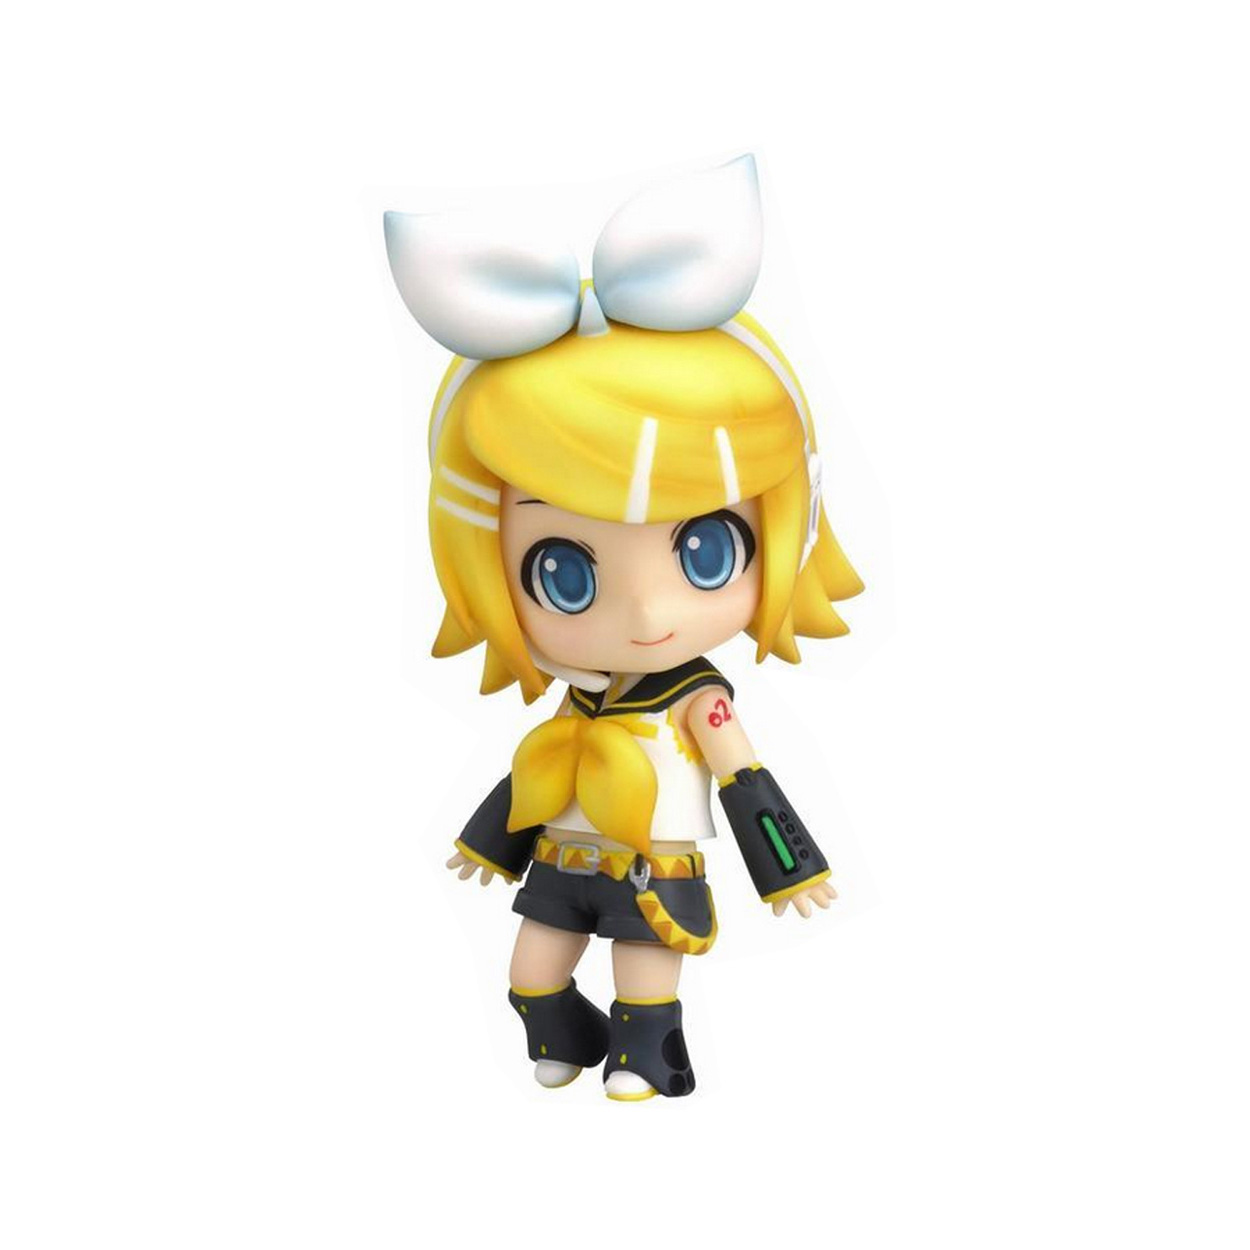 Chanycore GSC Nendoroid 189# Vocaloid Hatsune Miku Kagamine Rin Miku Sakura Miku PVC Action Figure Collection Model Toy 10cm 4'' купить в Москве 2019